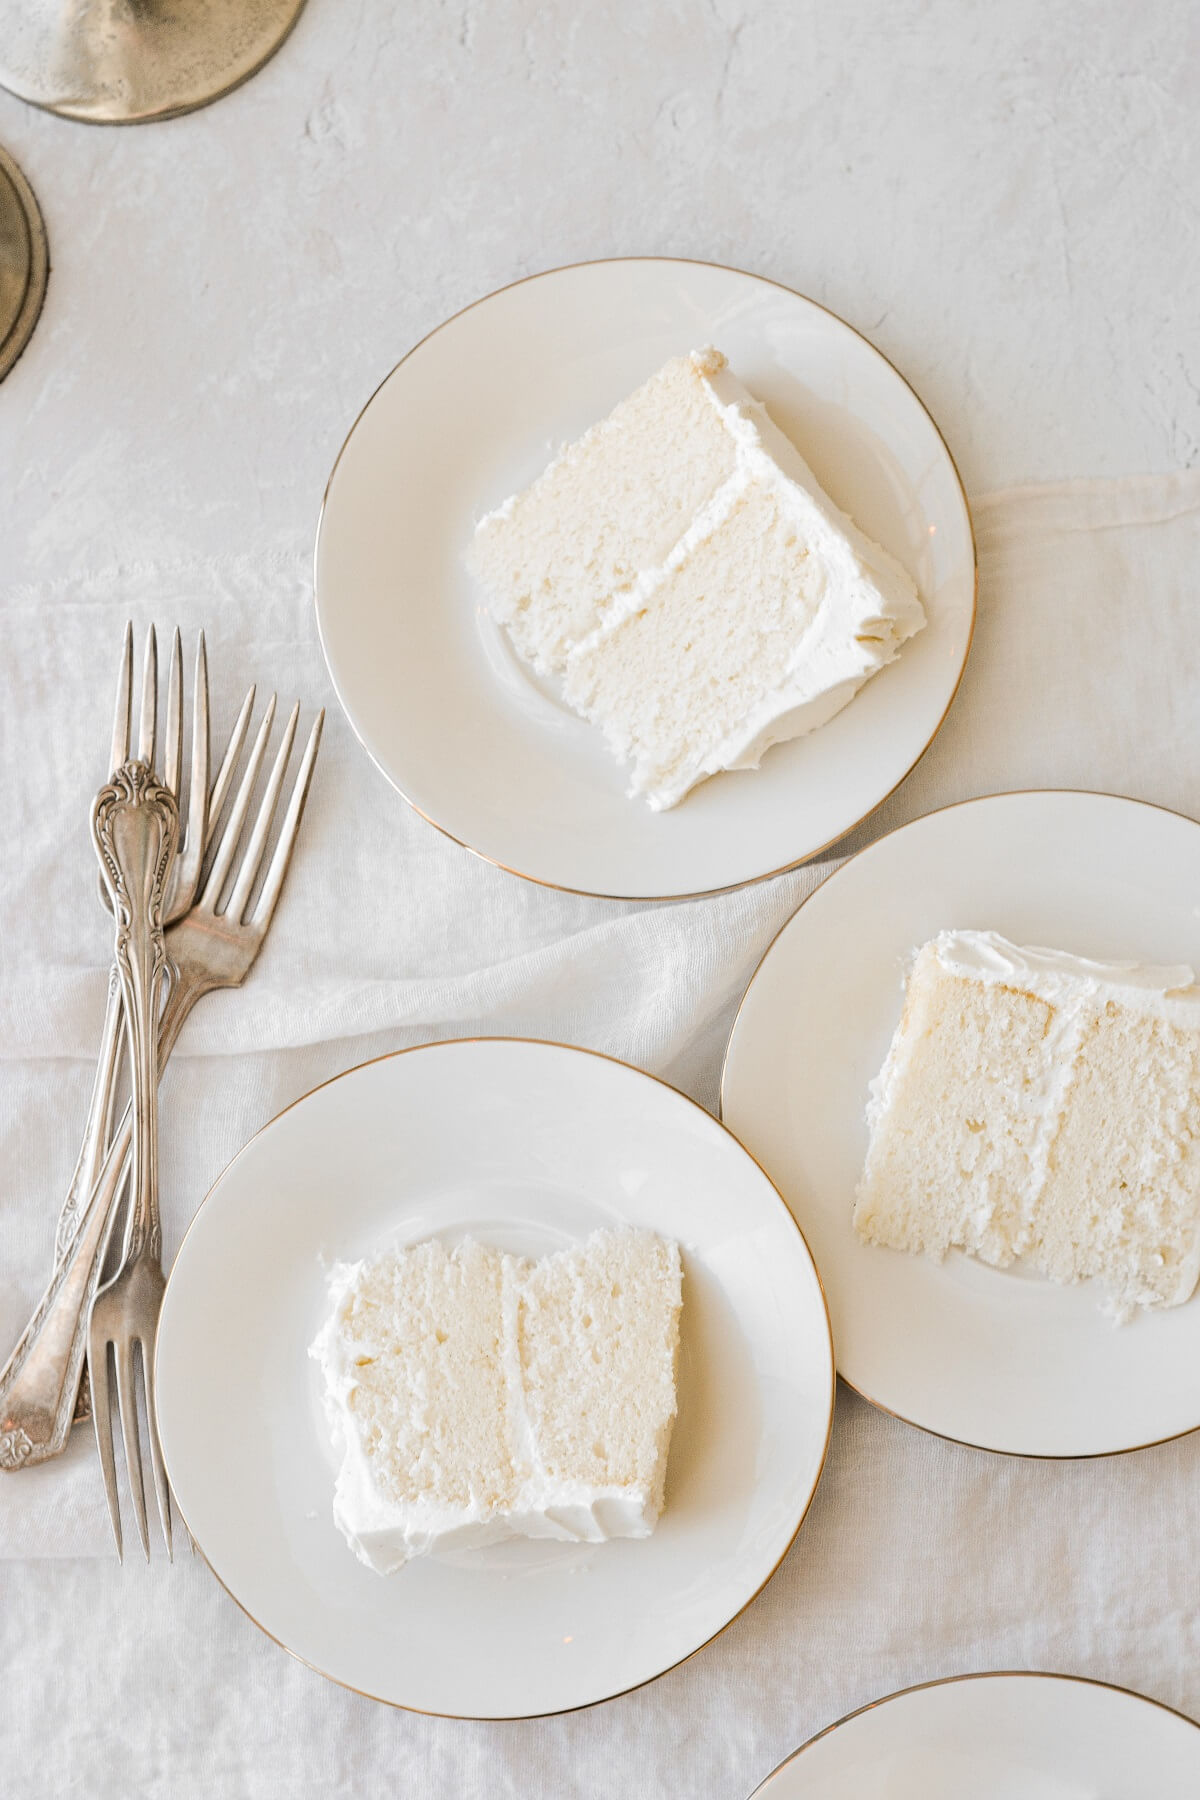 Slices of almond wedding cake on white plates.